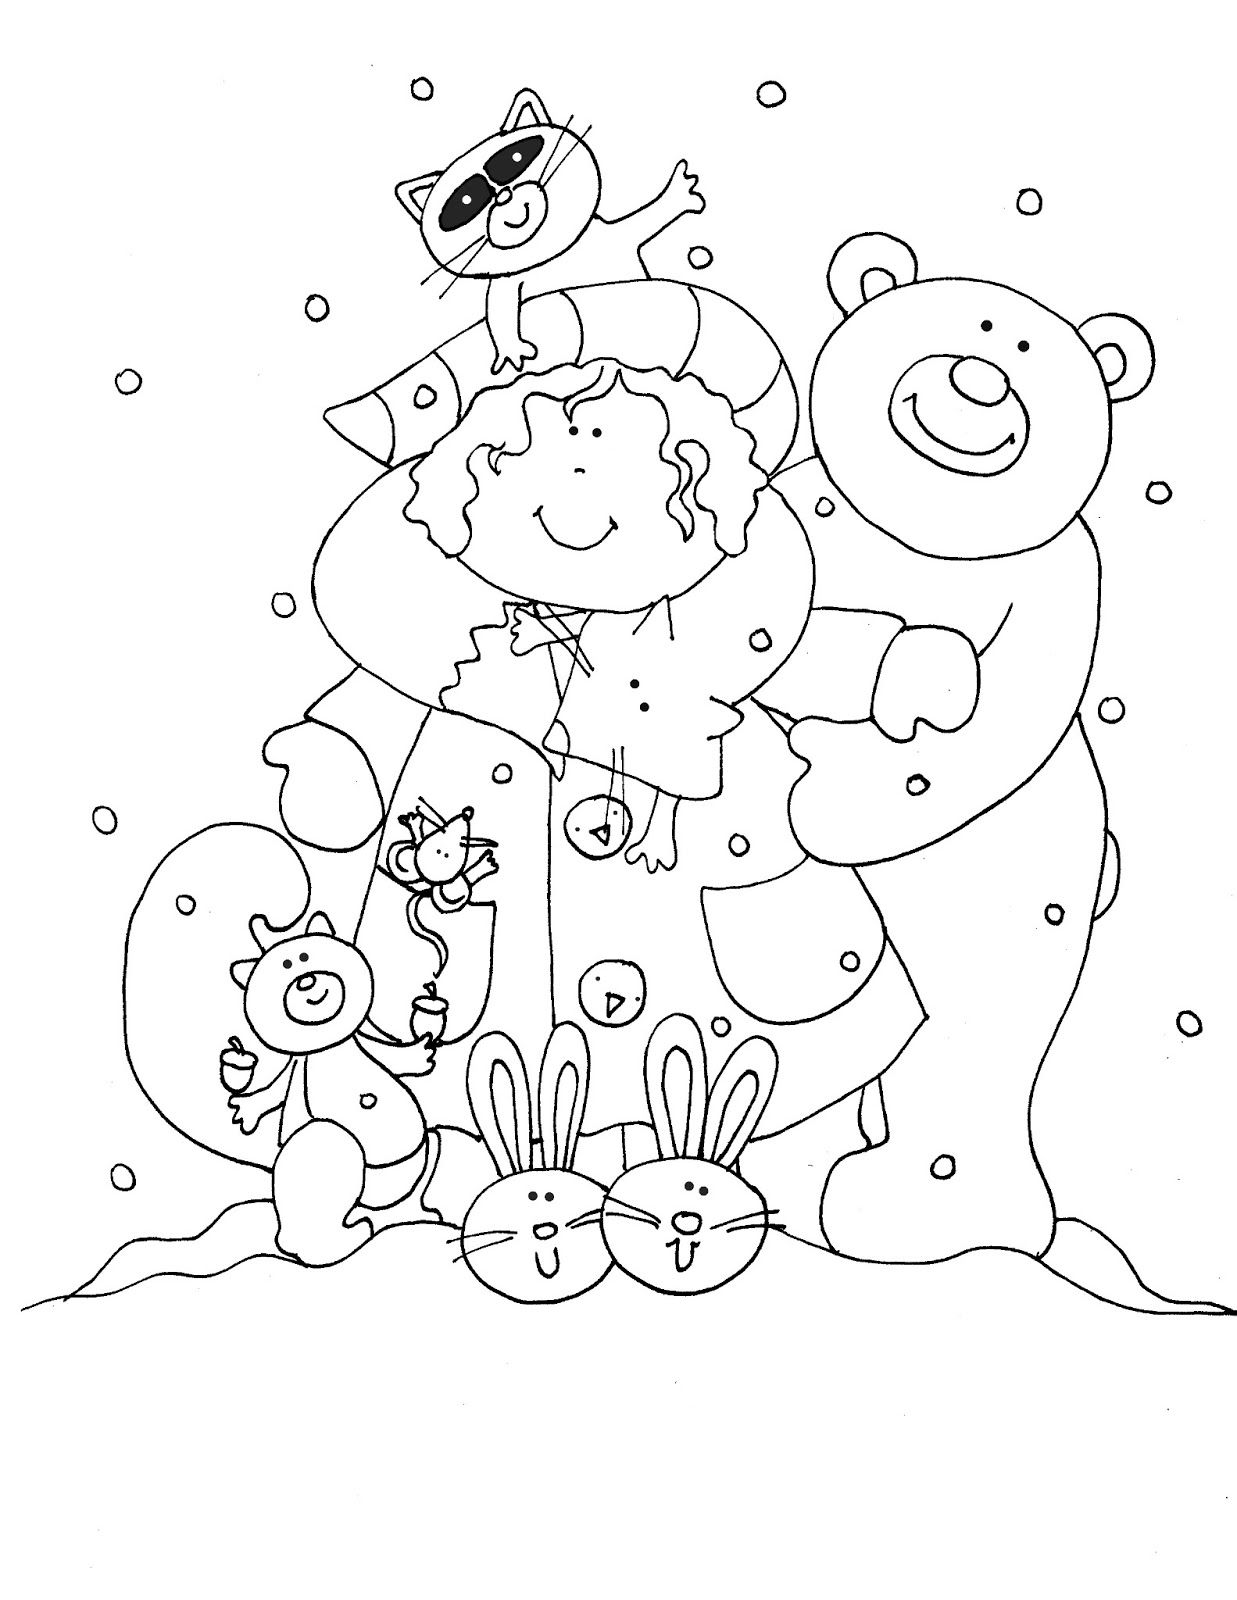 Christmas In July Coloring Pages With Free Dearie Dolls Digi Stamps Woodland Forever